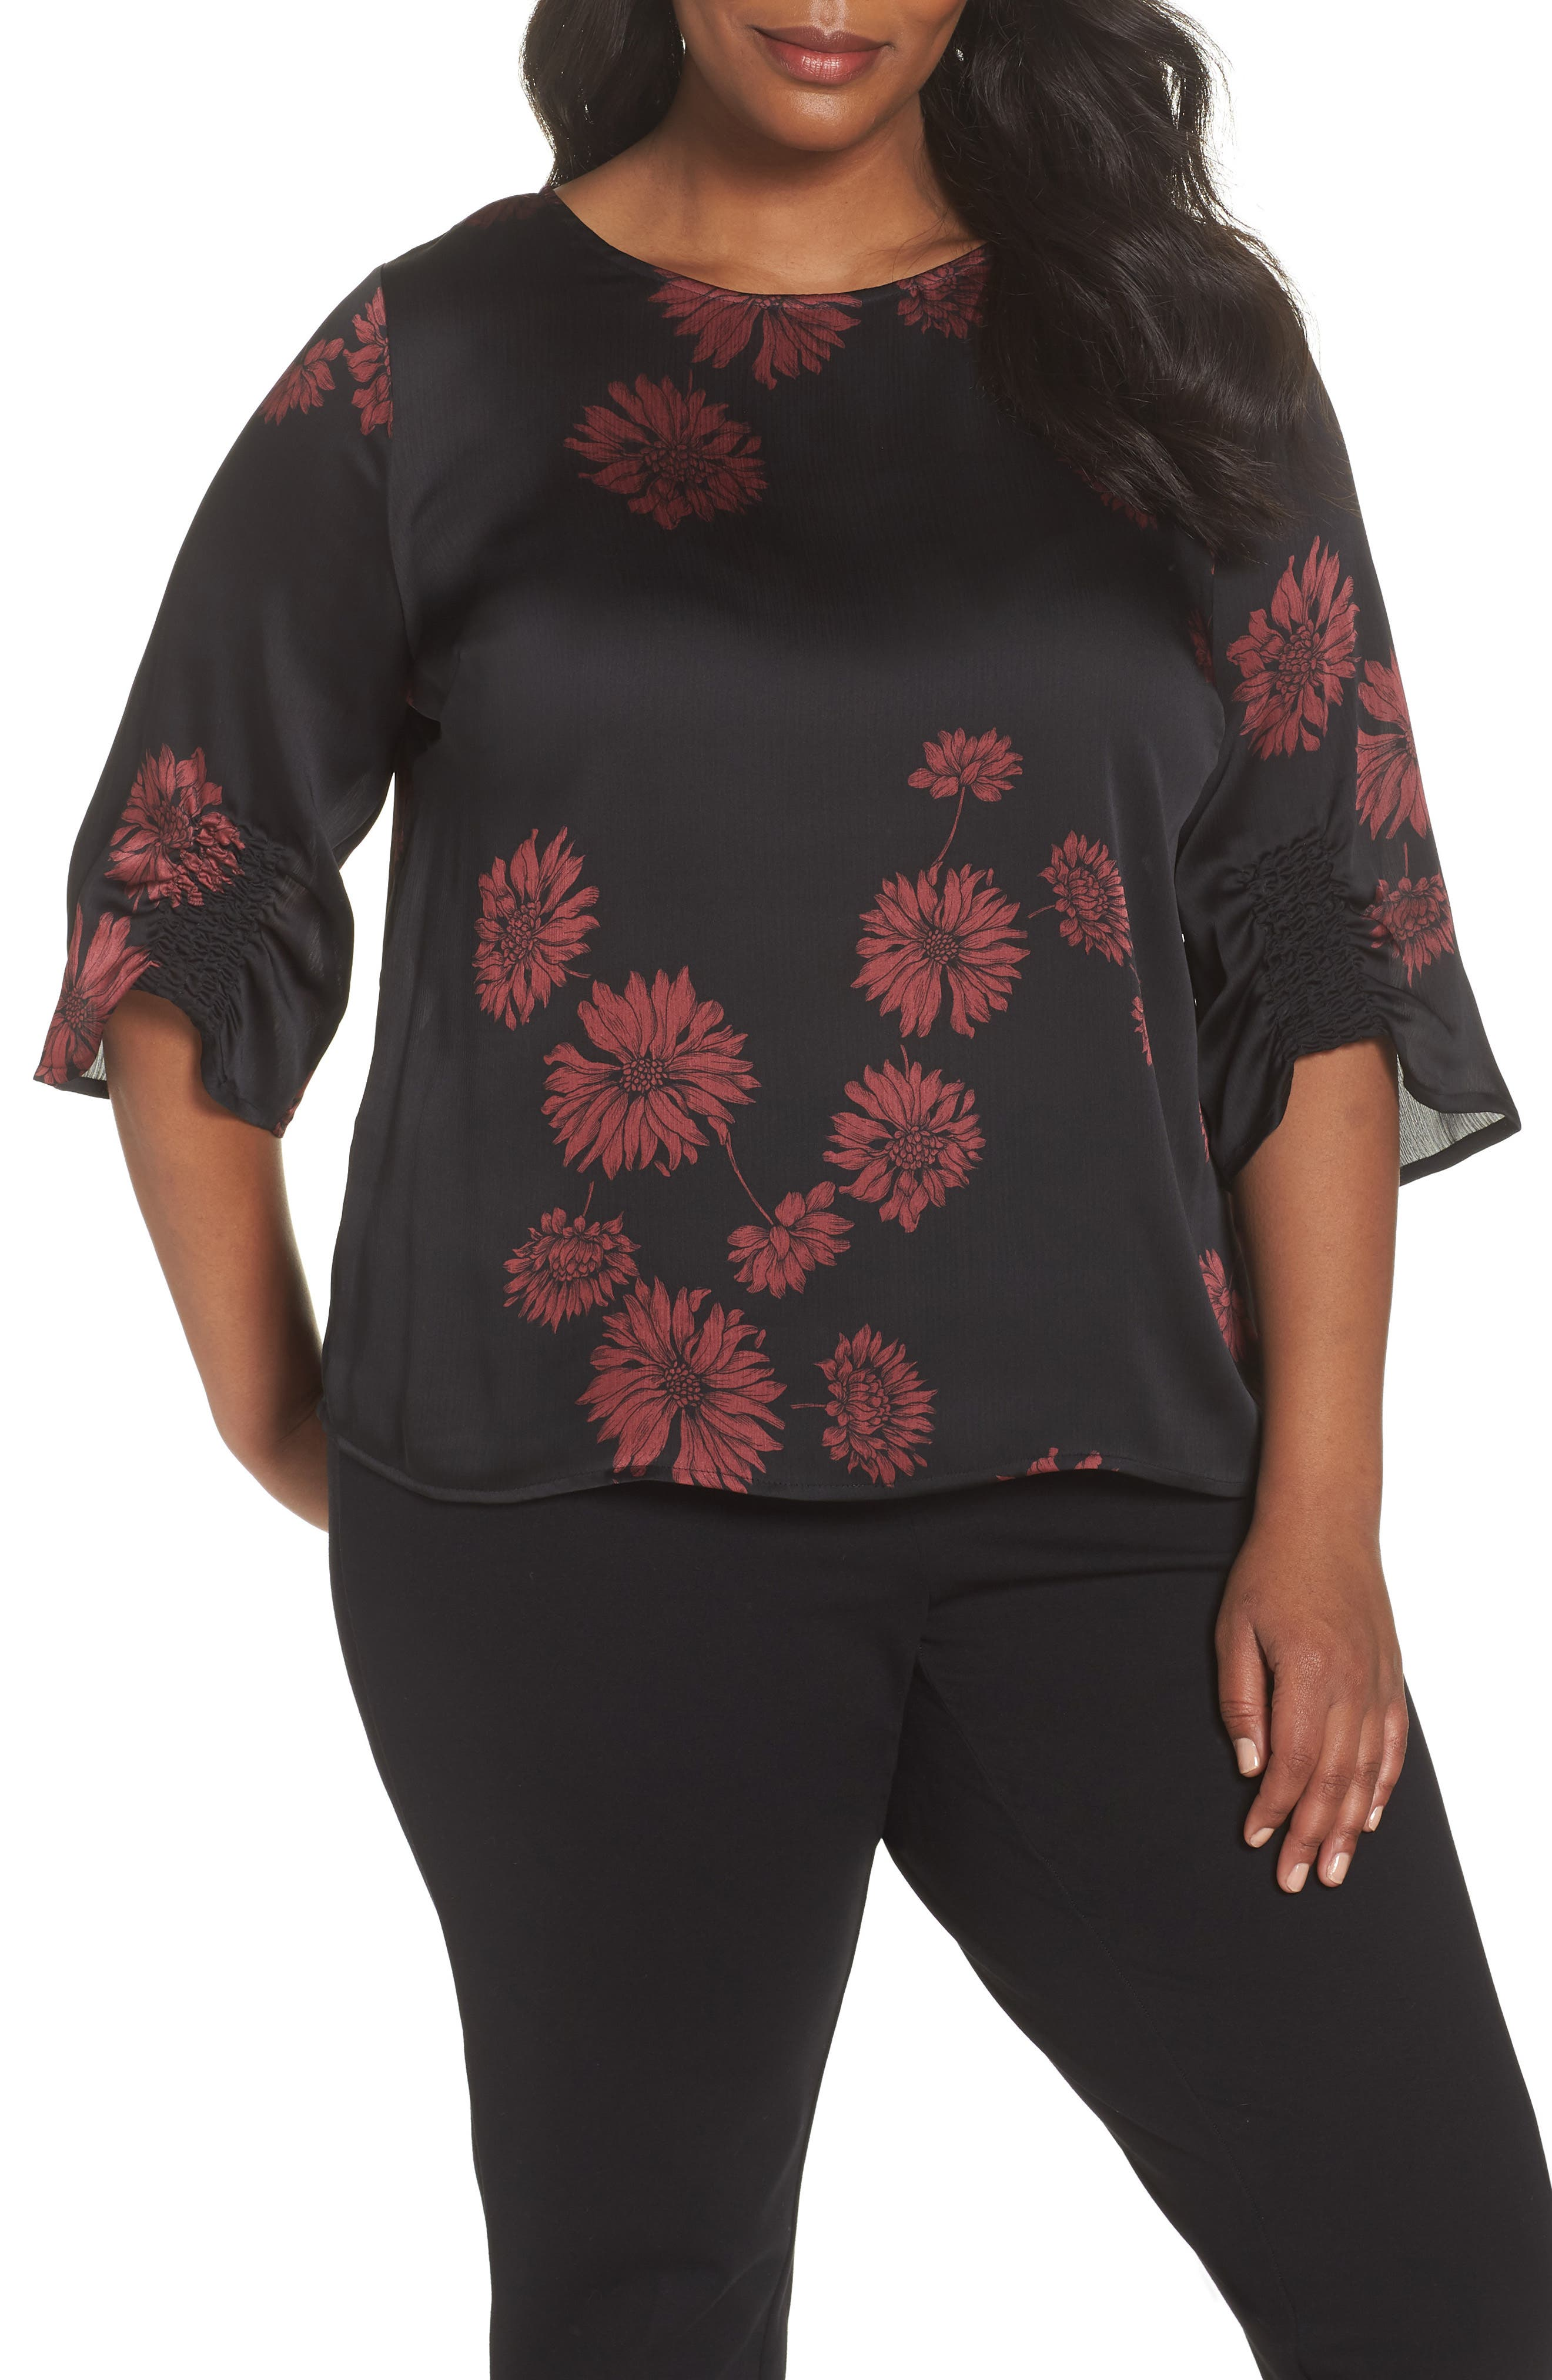 Chateau Floral Print Top,                             Main thumbnail 1, color,                             Rich Black